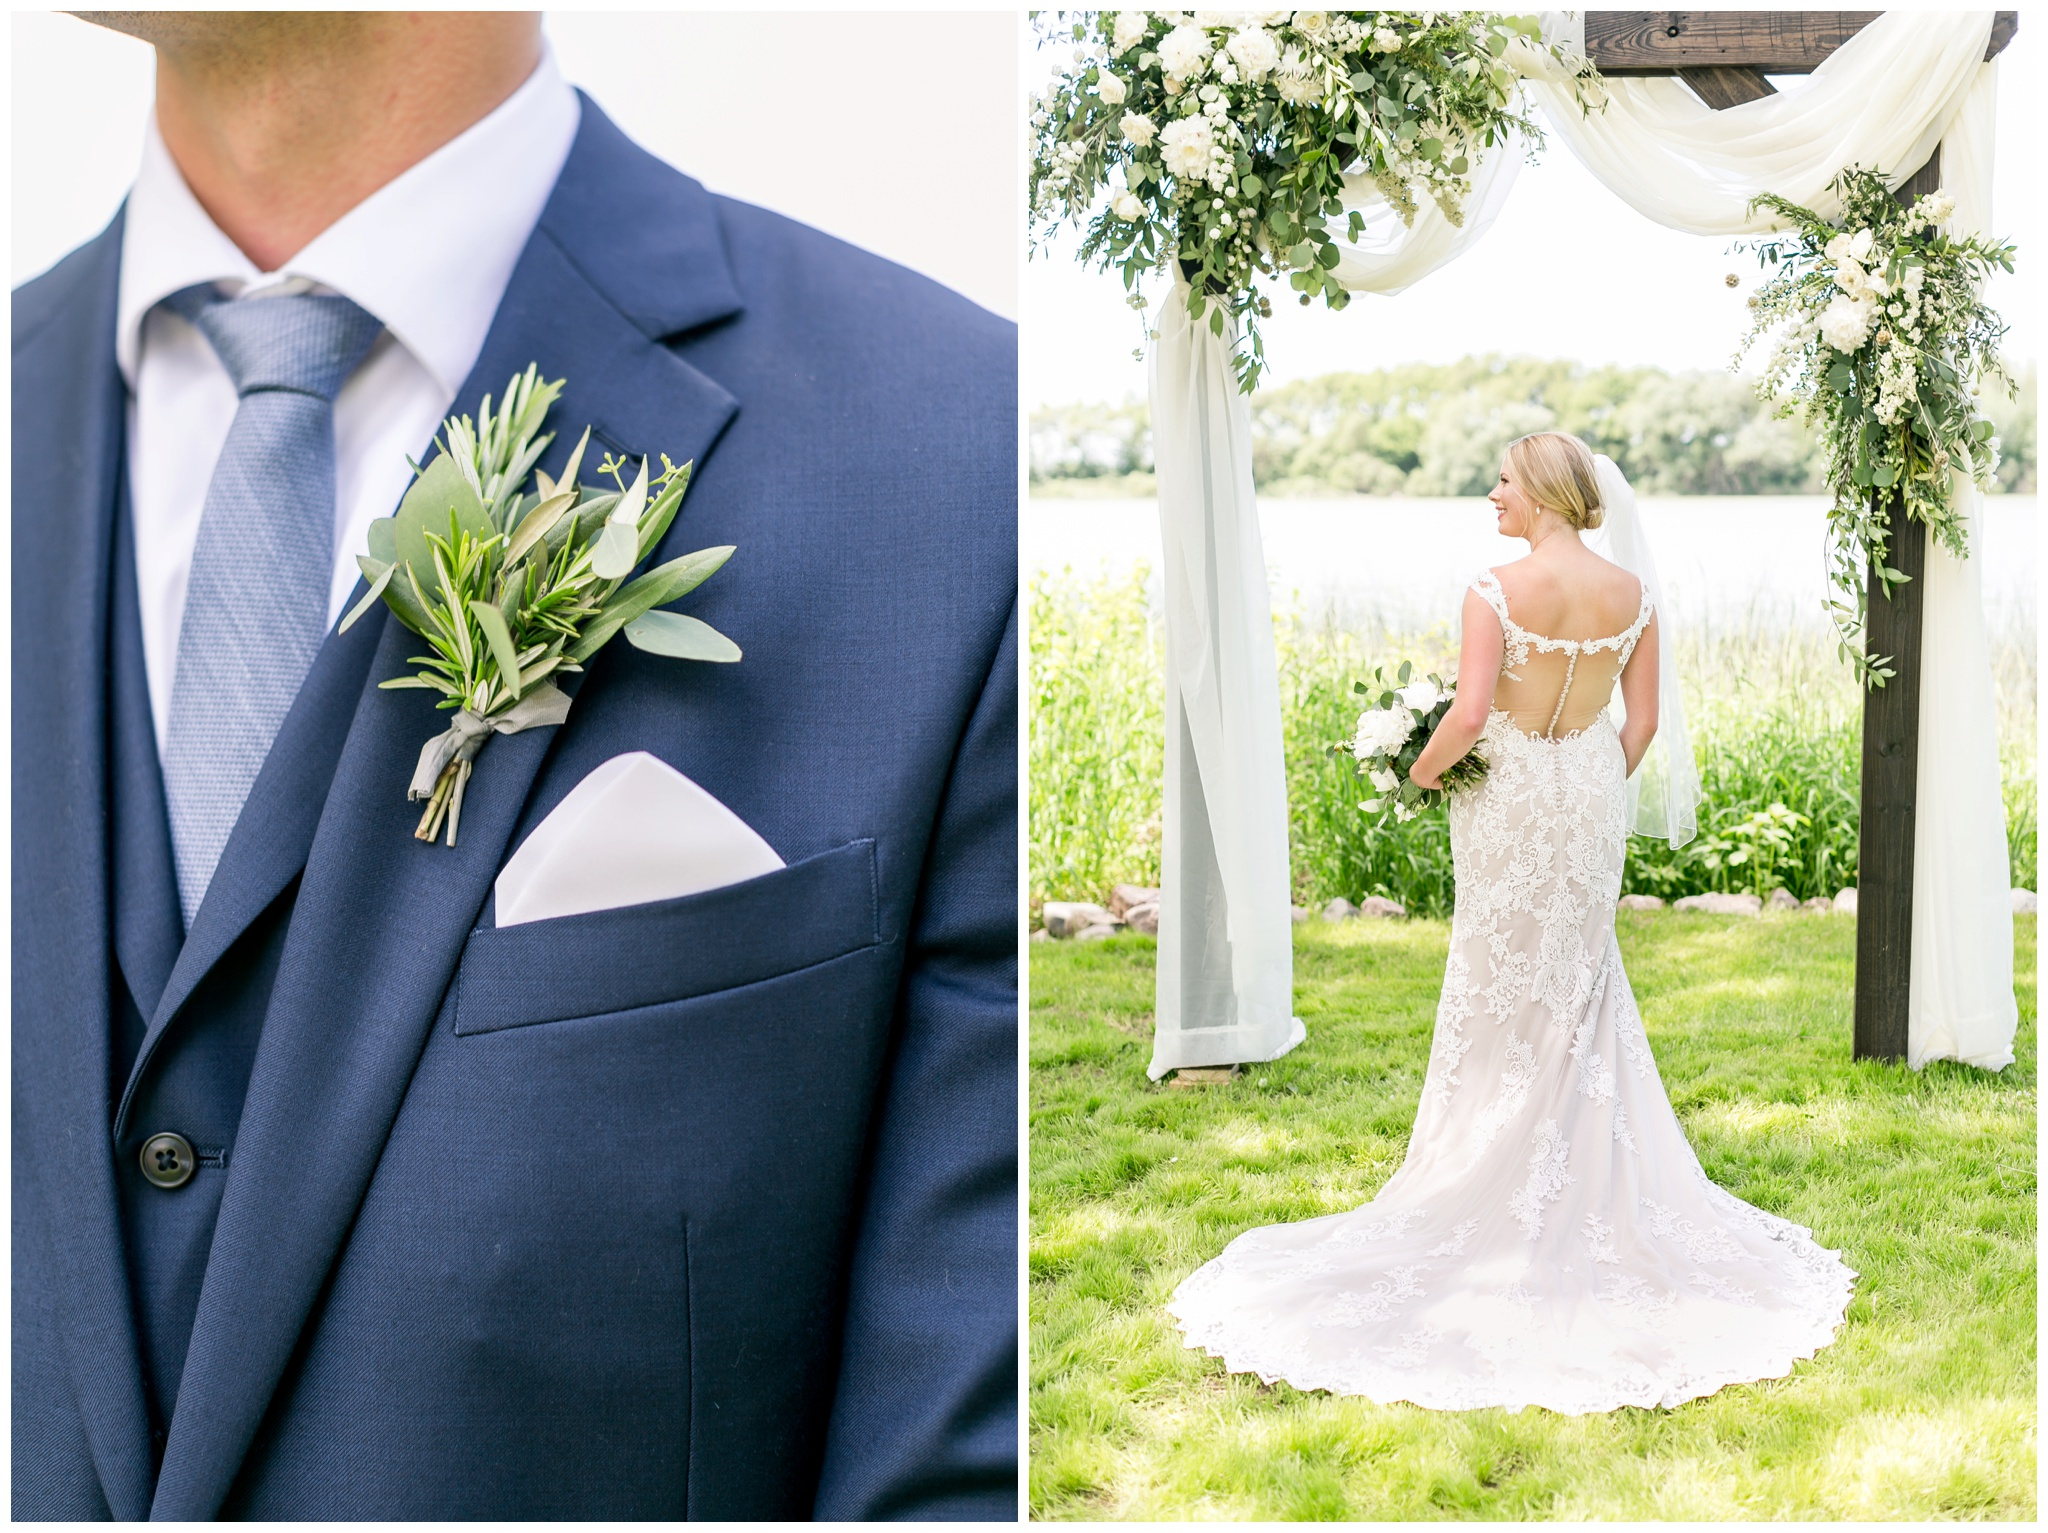 private_estate_wedding_stoughton_wisconsin_wedding_caynay_photo_3849.jpg